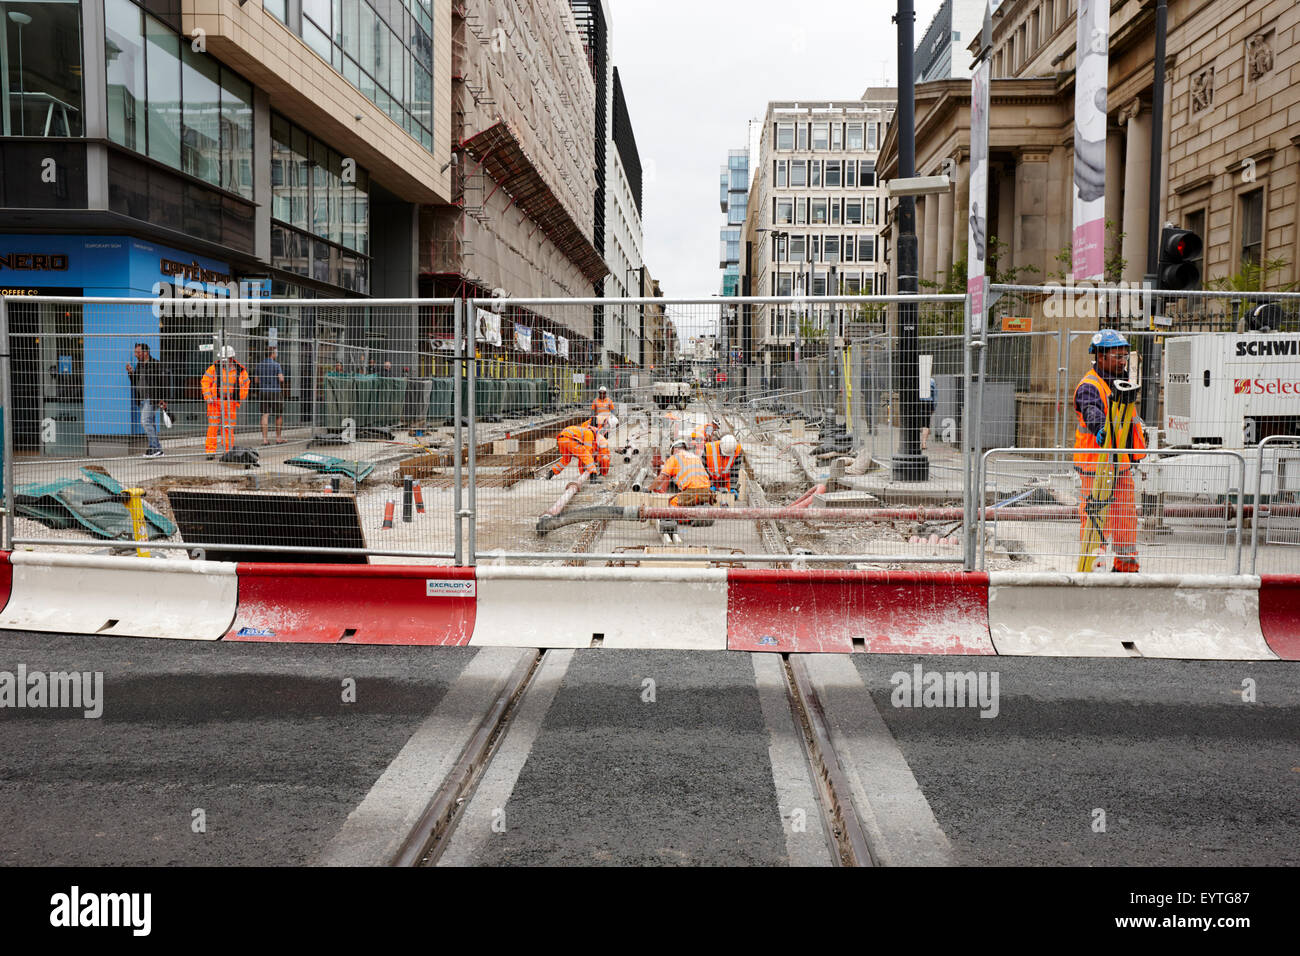 ongoing tram works Manchester city centre uk - Stock Image